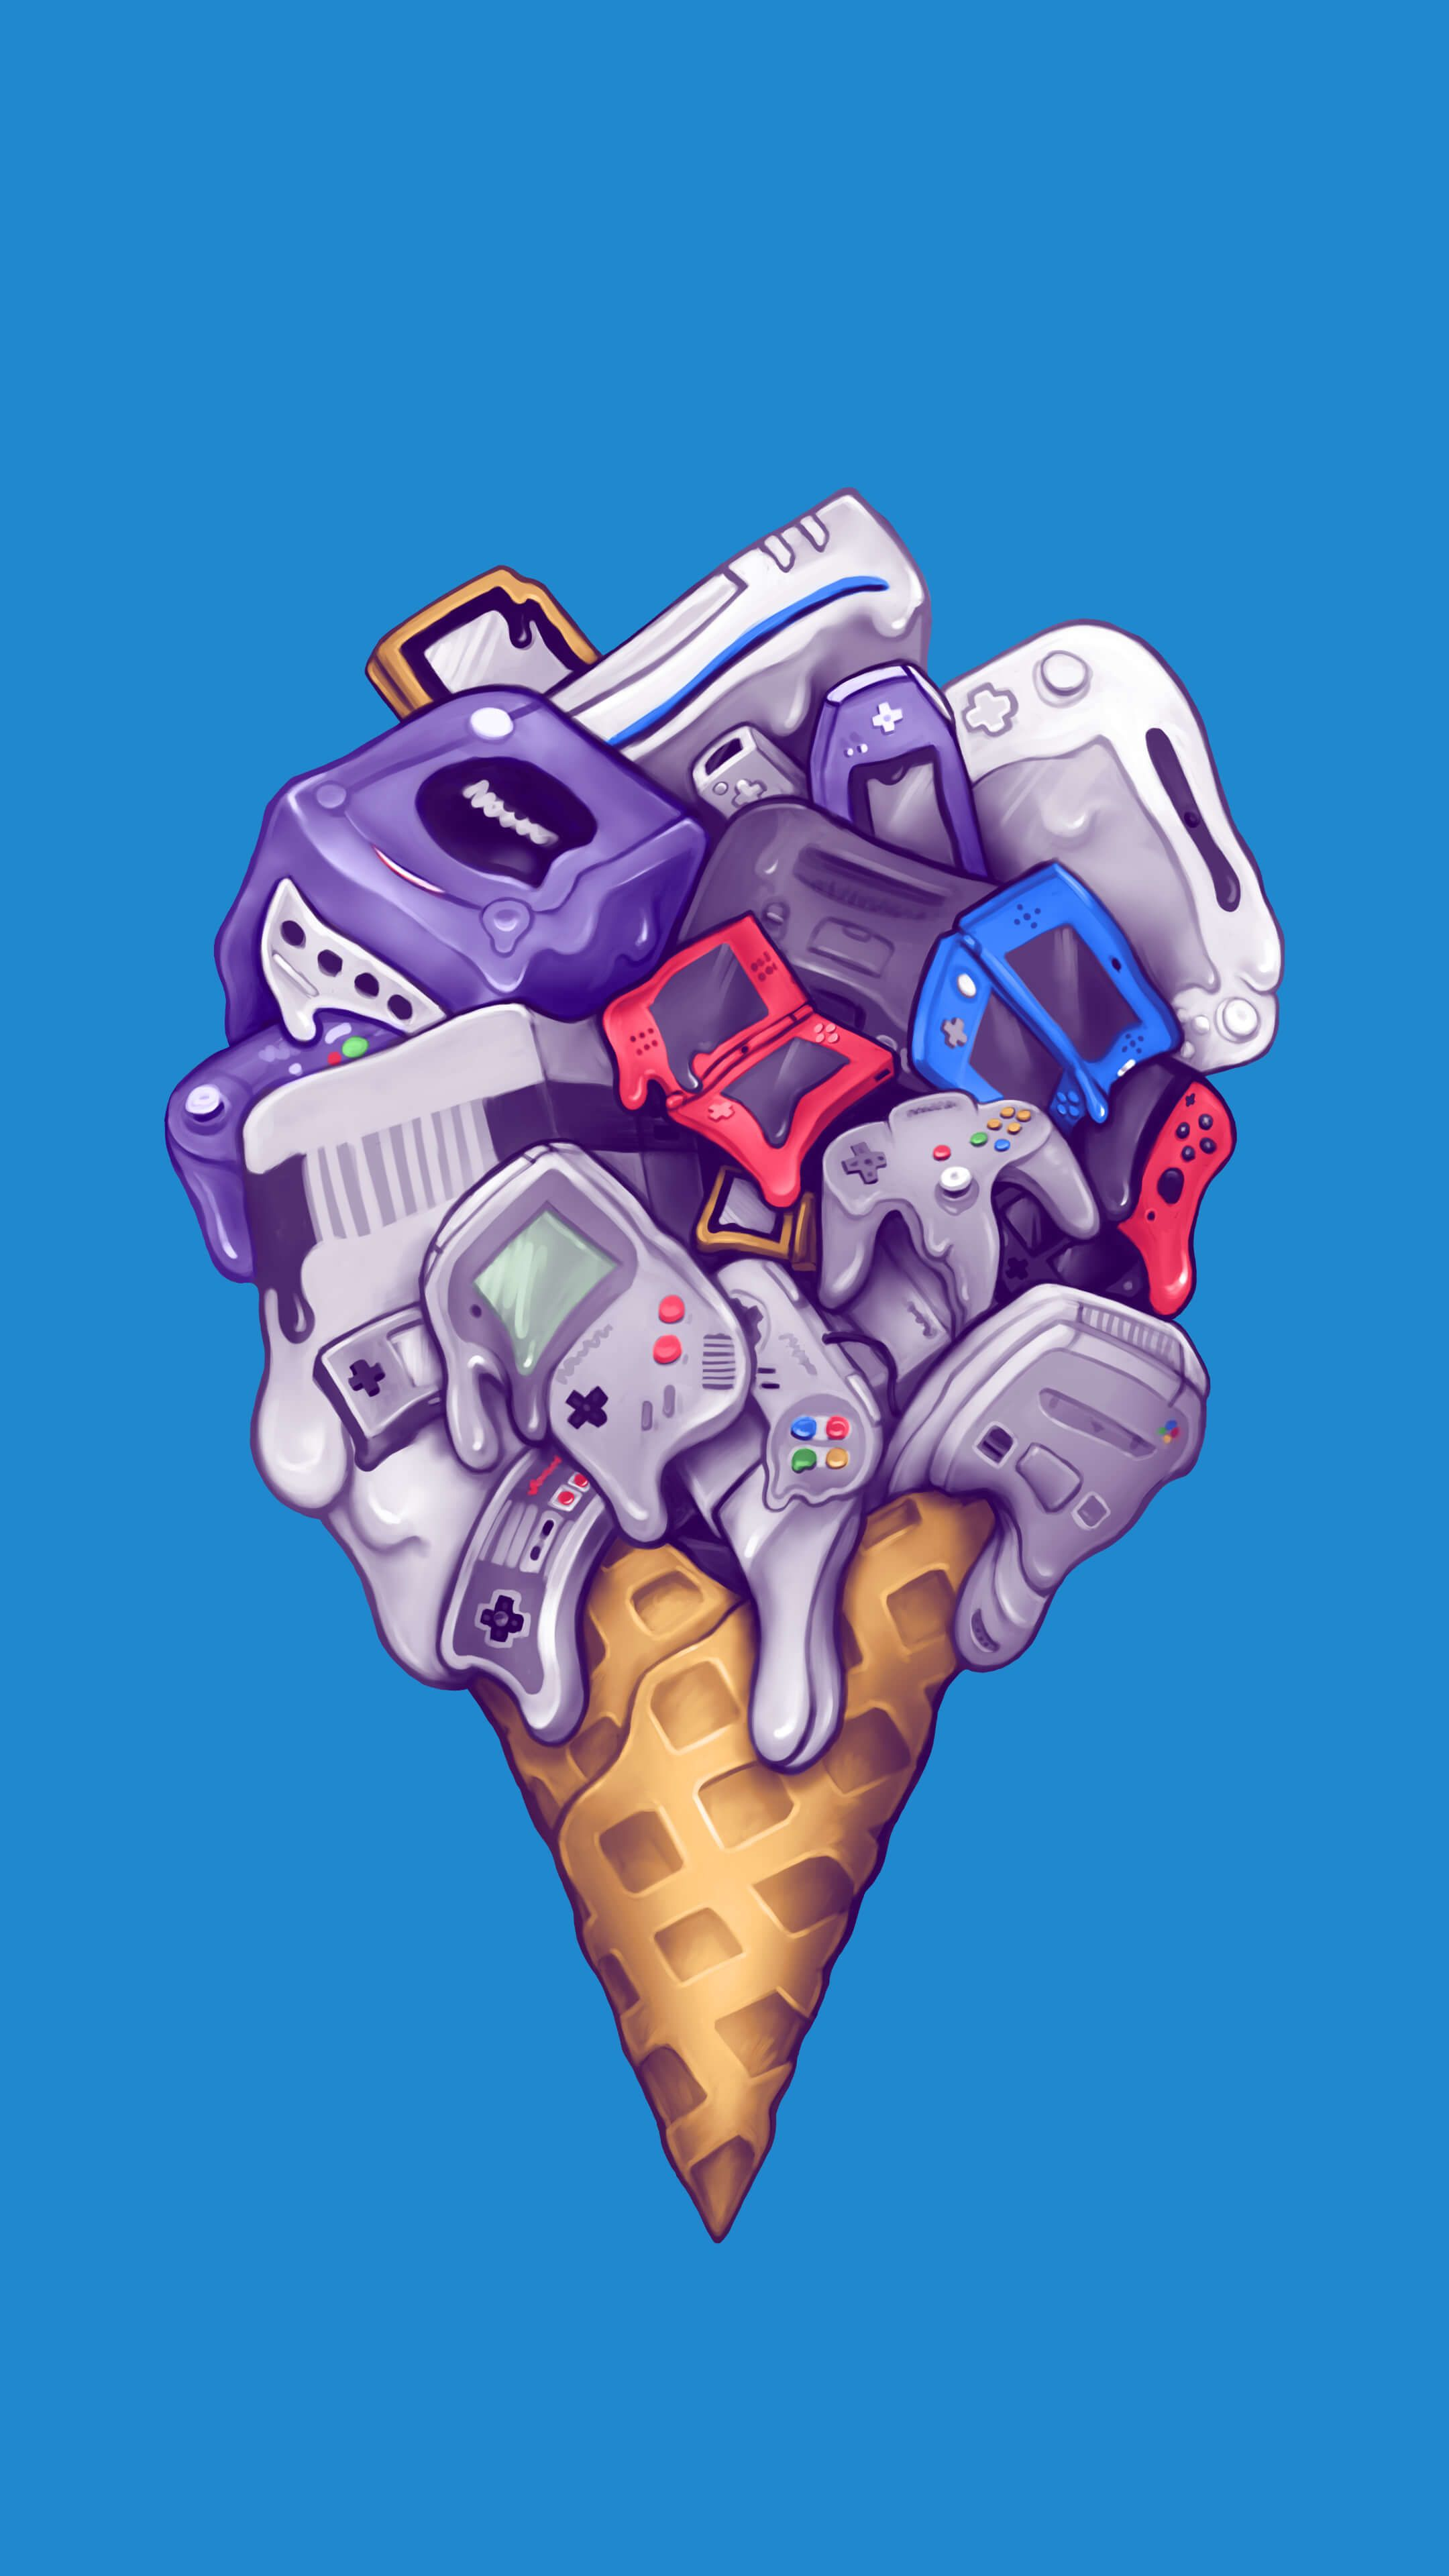 Ice cream Game wallpaper iphone, Nerdy wallpaper, Hd